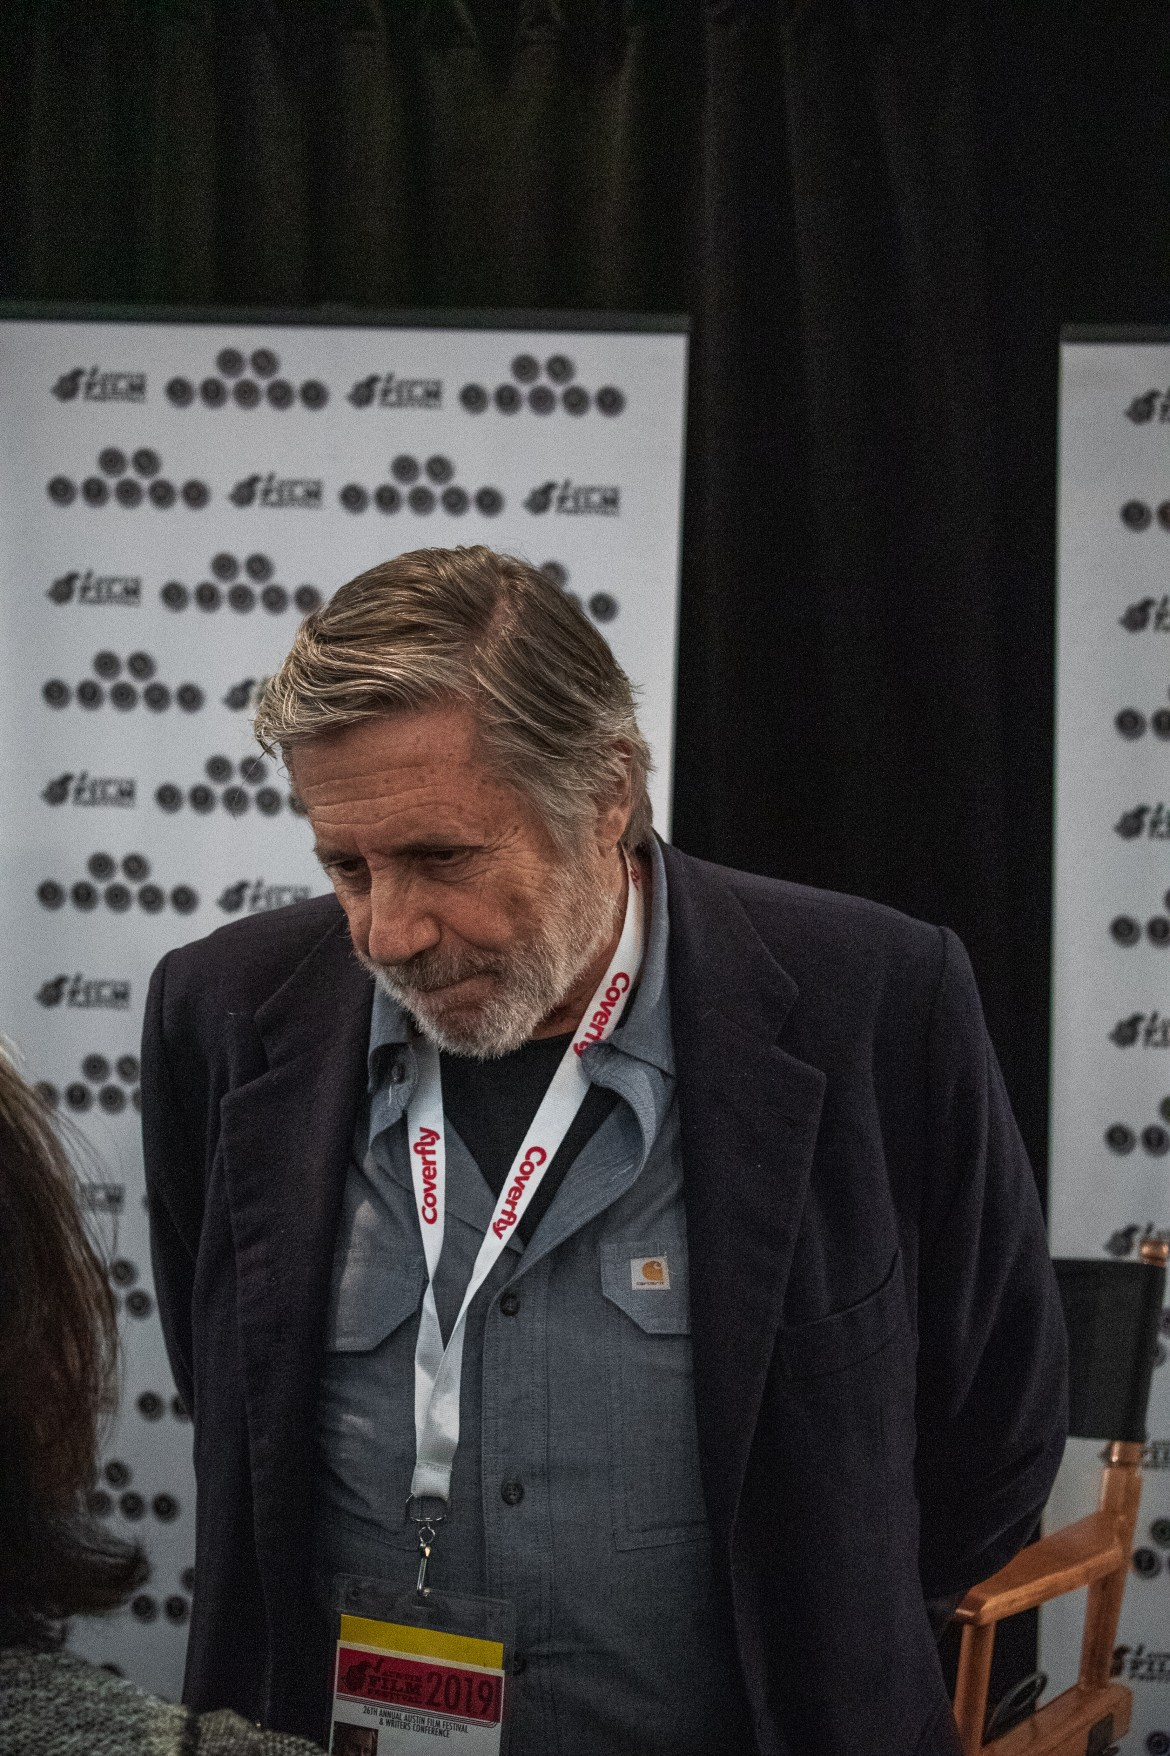 Man looking at a woman. He is wearing a navy suit jacket and a light blue button down with a press pass around his neck.